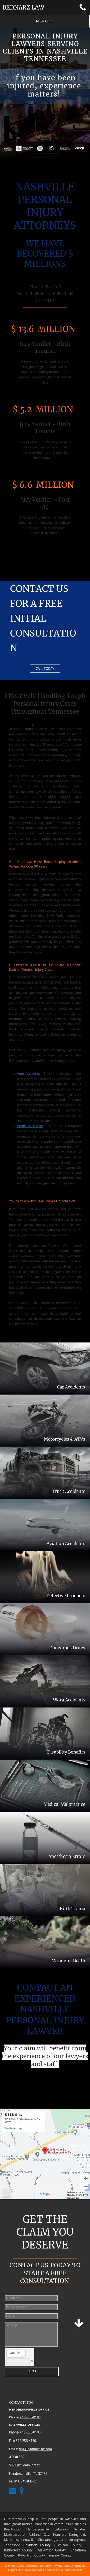 Bednarz And Bednarz - Nashville TN Lawyers